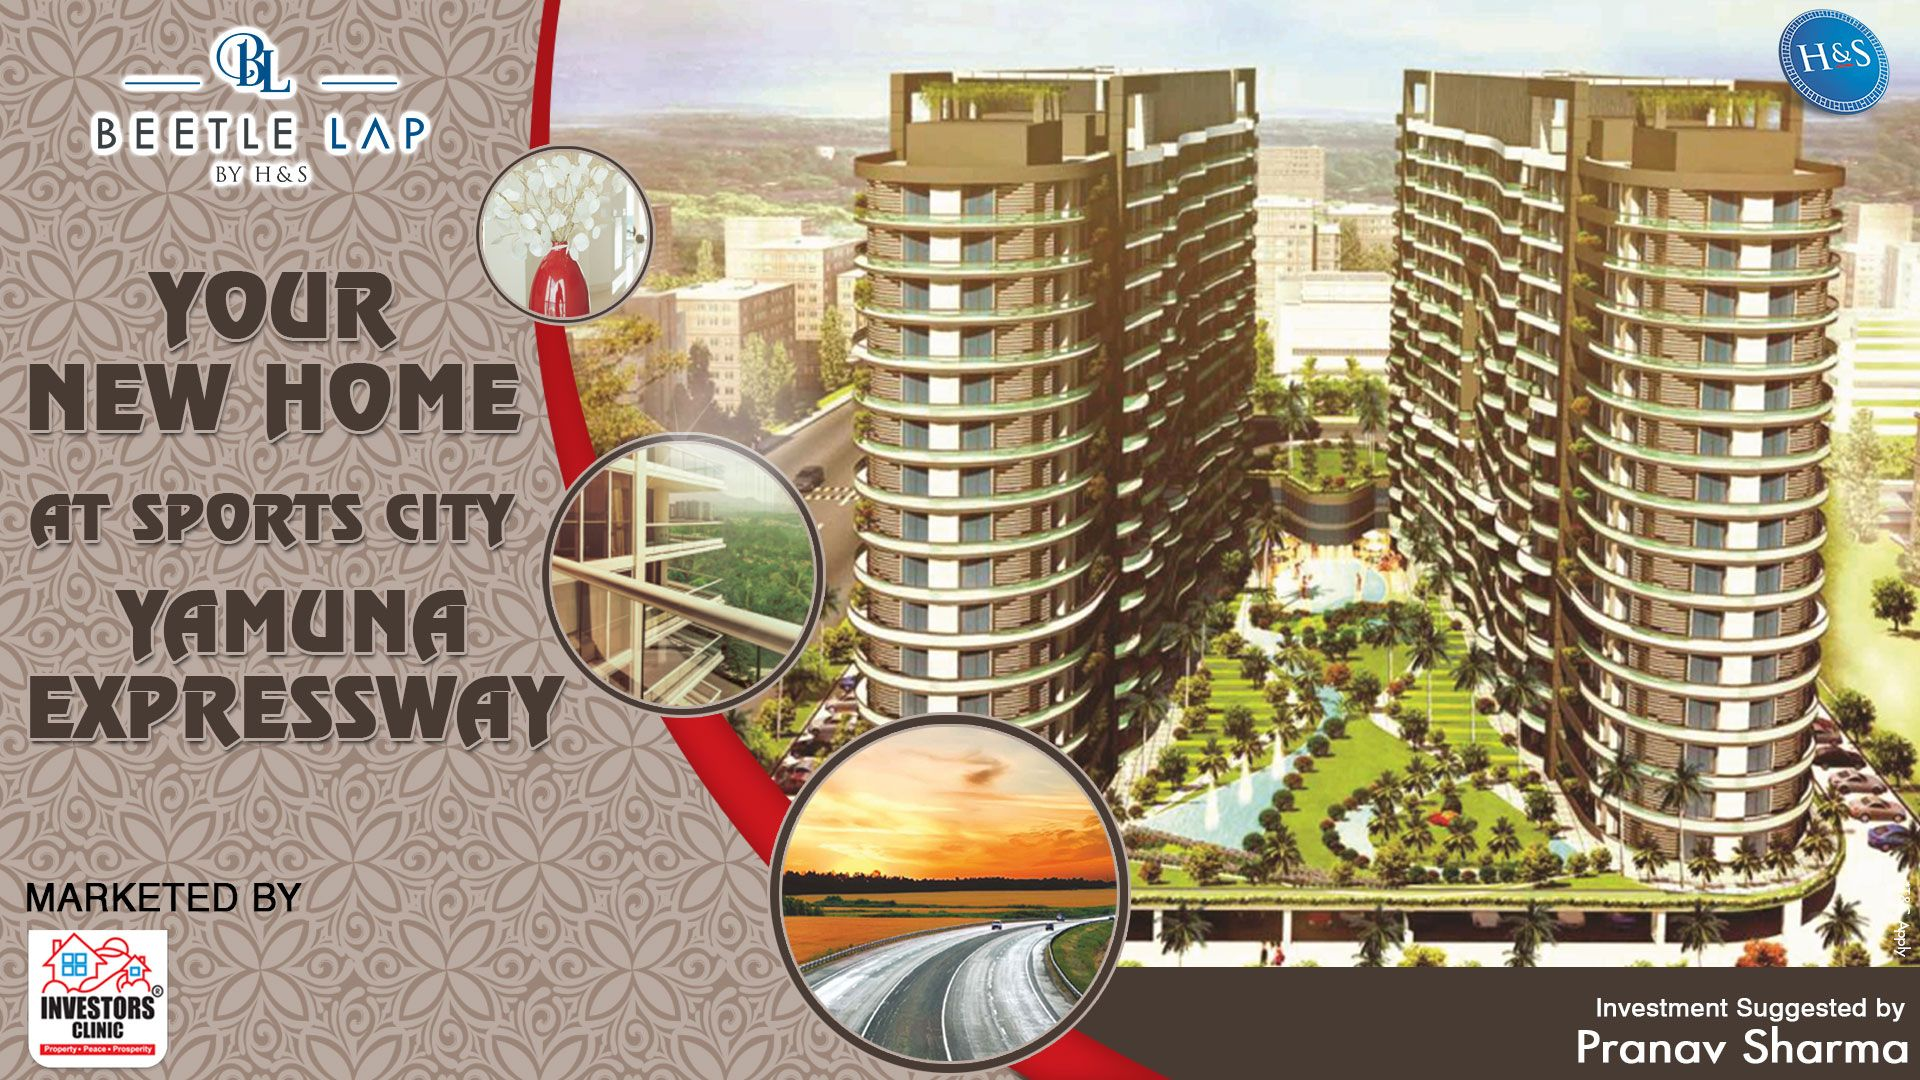 The finest residential pit stop of Yamuna Expressway.  #BeetleLap, an exhilarating residential destination located at Jaypee Sports City, is one of the fastest emerging projects in NCR. Call at +91 9250401940 for more information. #residence #realestate #yamunaexpressway